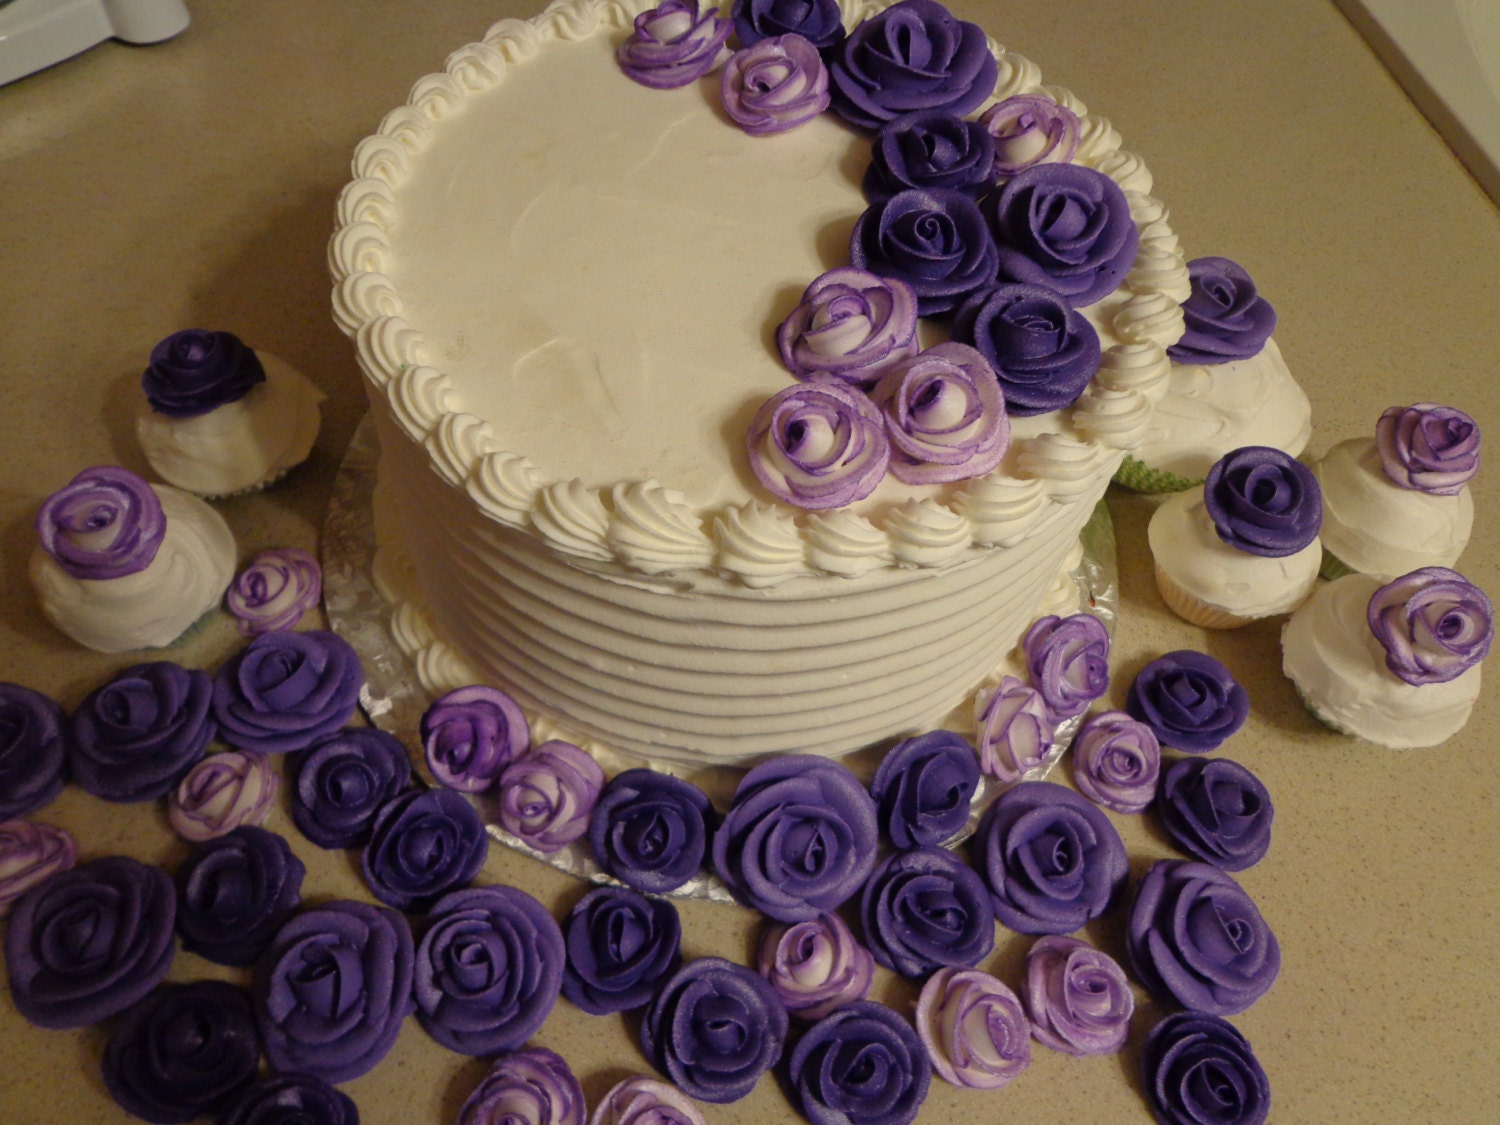 Cake Decorating Icing Roses : Purple Royal icing roses edible for cake by ...